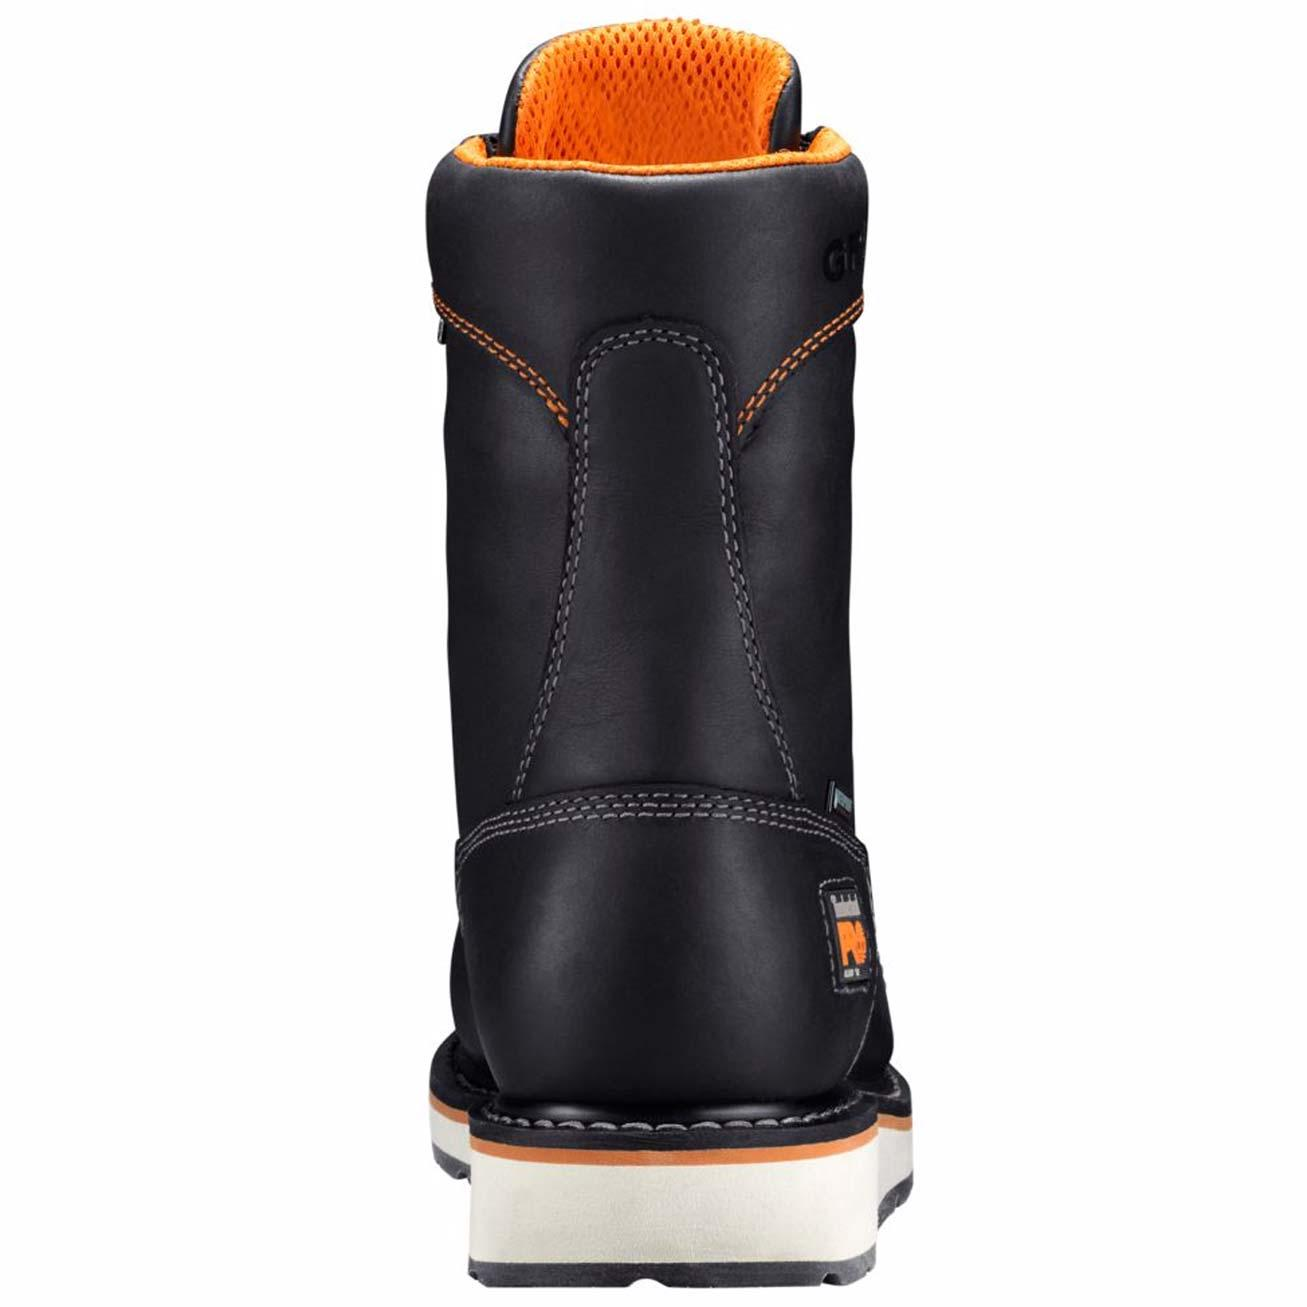 fadf4f5882d Images. Timberland PRO Gridworks Alloy Toe Waterproof Work Boot ...